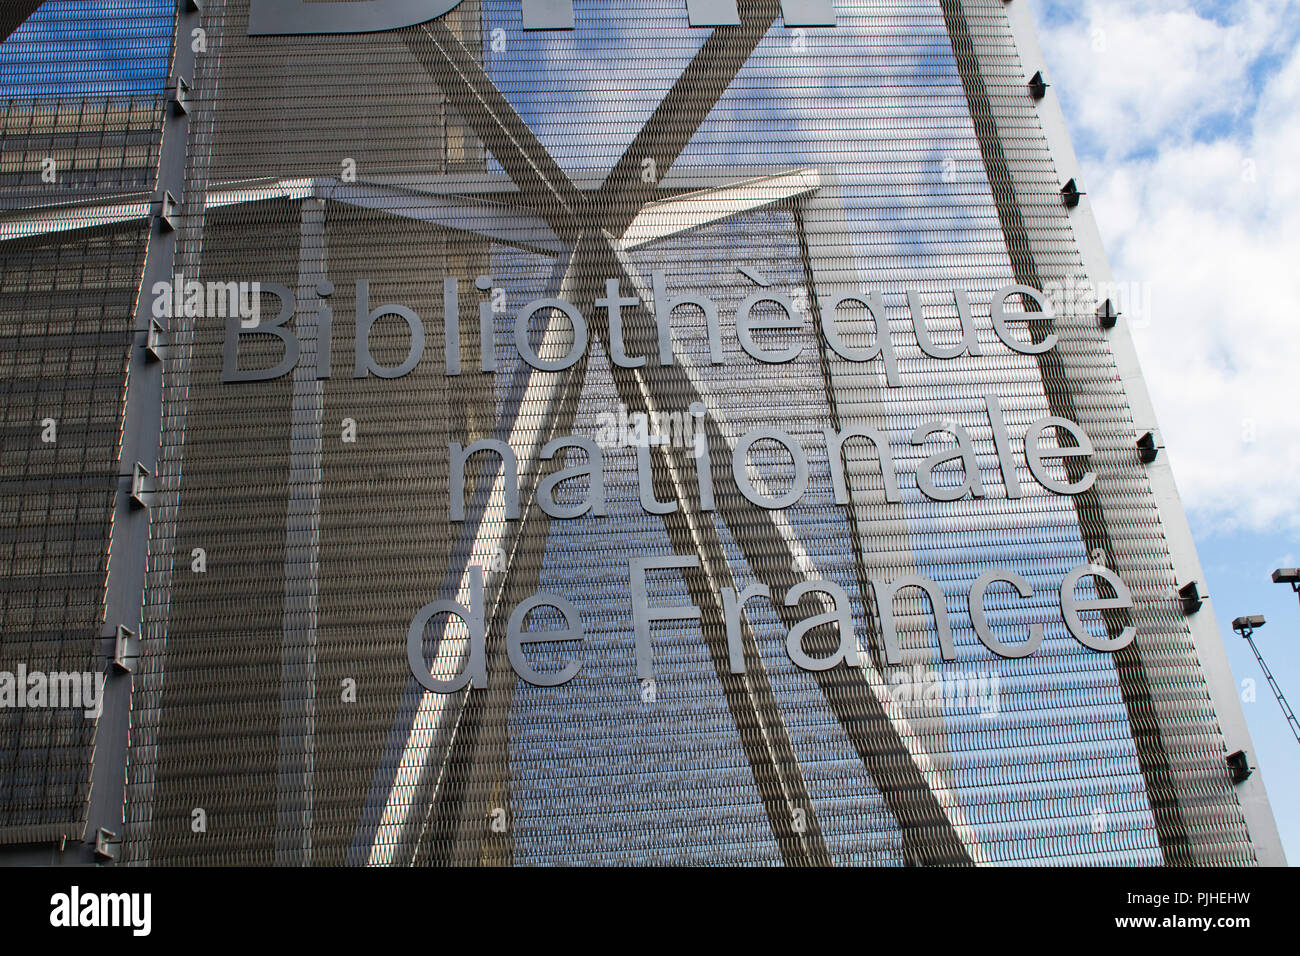 Photo De Bibliothèque Bibliotheque Nationale De France Stock Photos